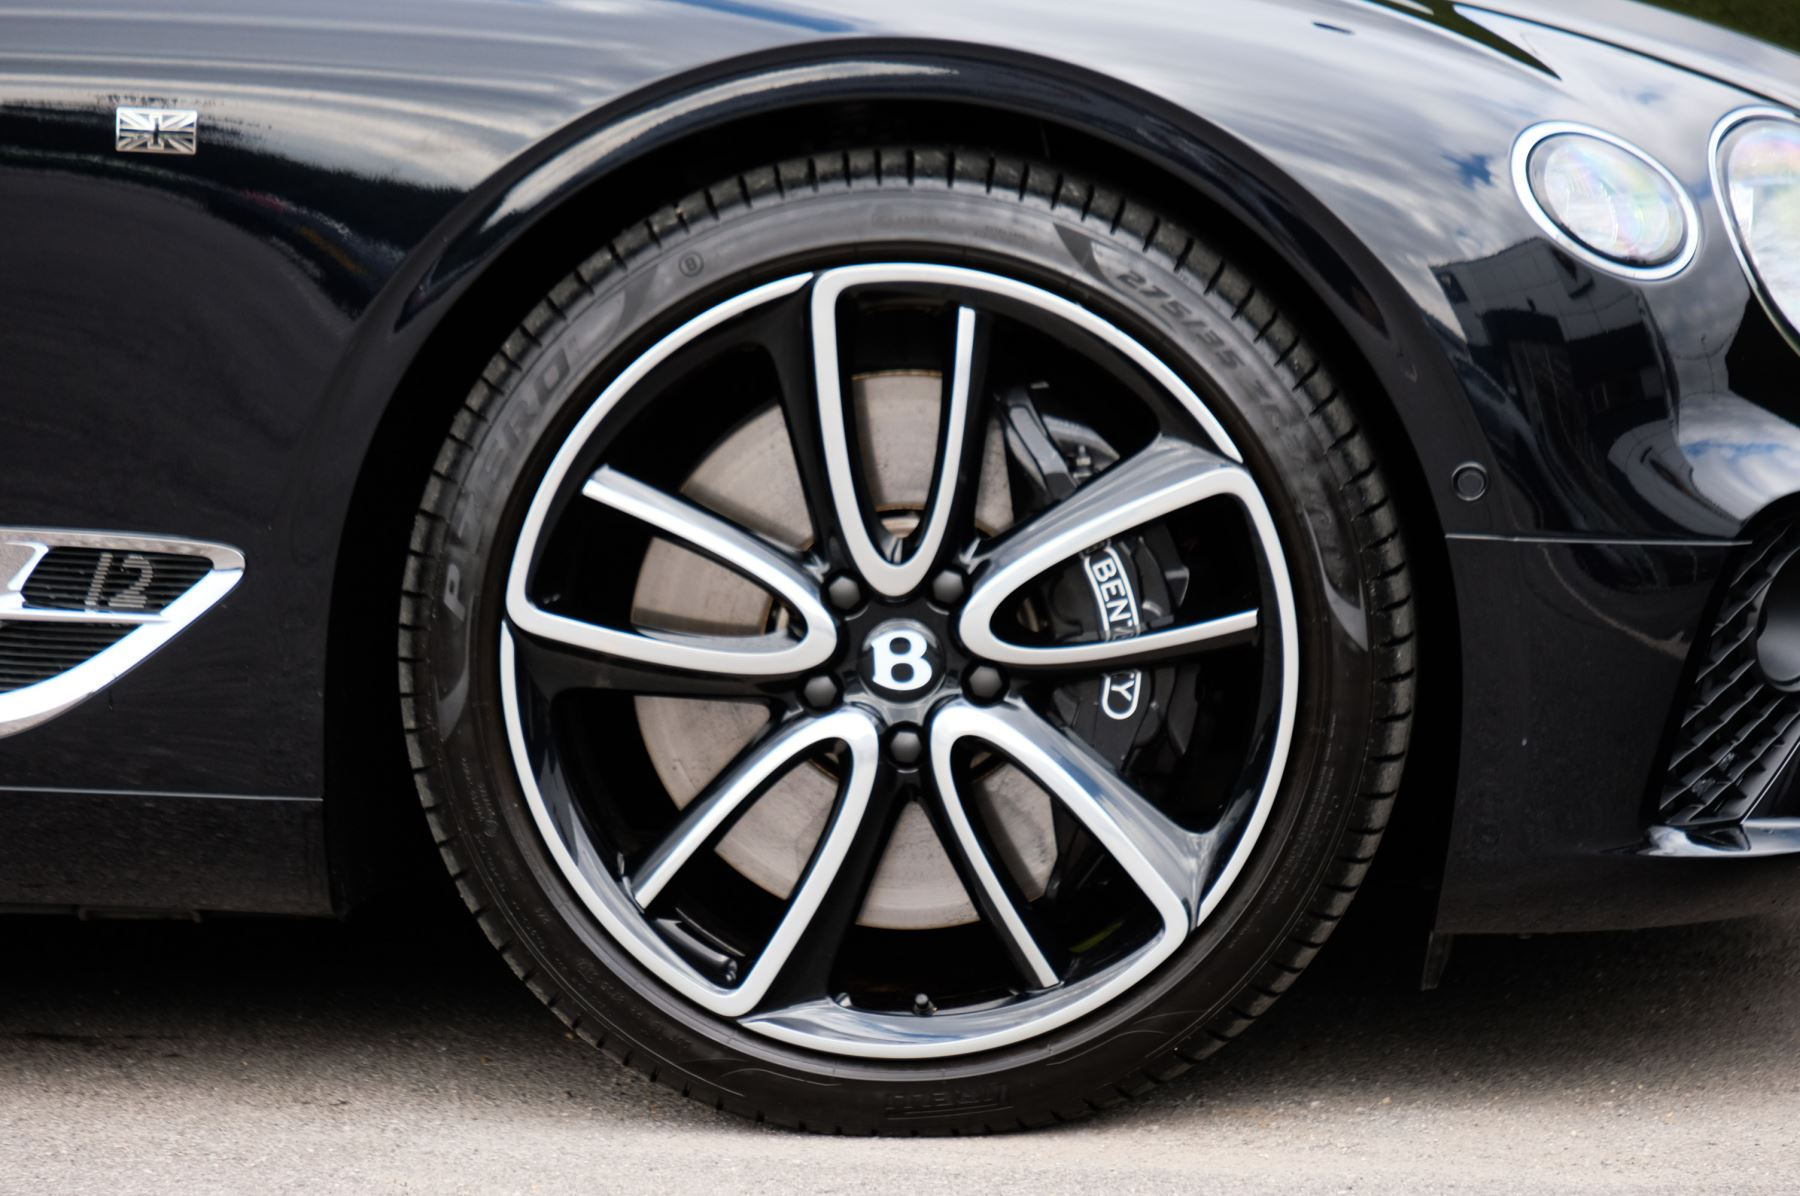 Bentley Continental GT 6.0 W12 1st Edition - Comfort Seating - Touring Specification image 11